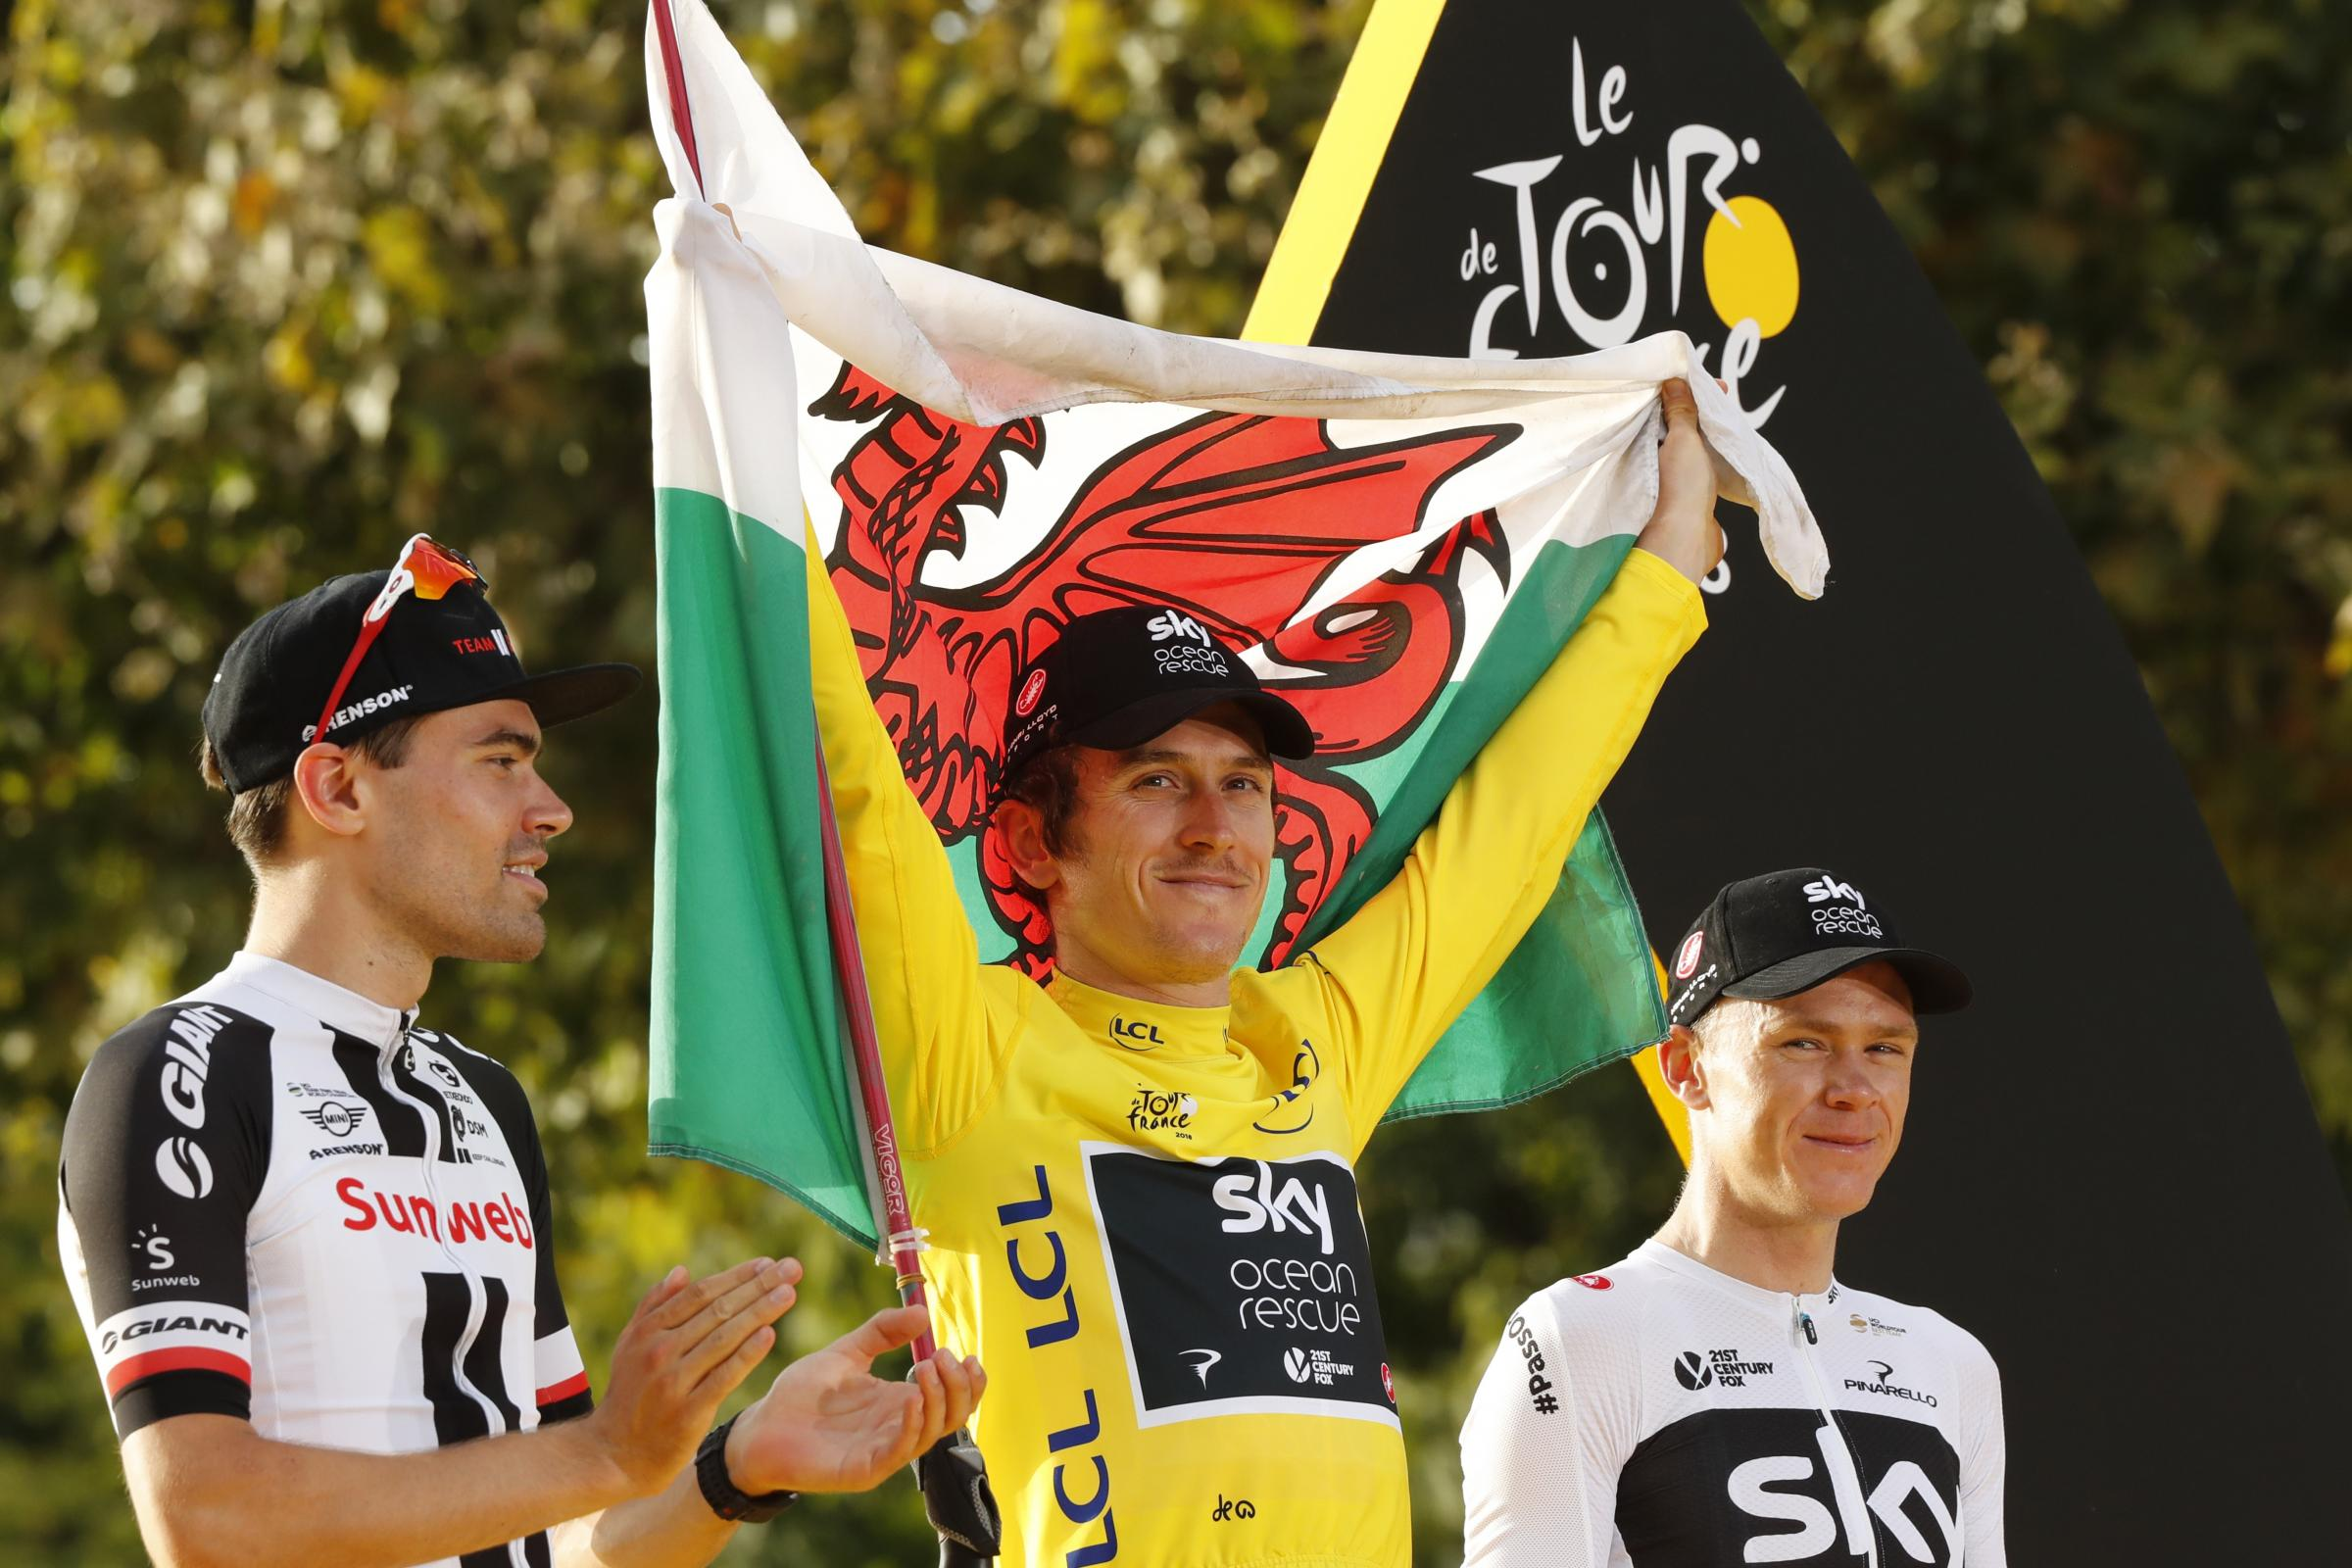 Team Sky's Geraint Thomas becomes first Welshman to win Tour de France